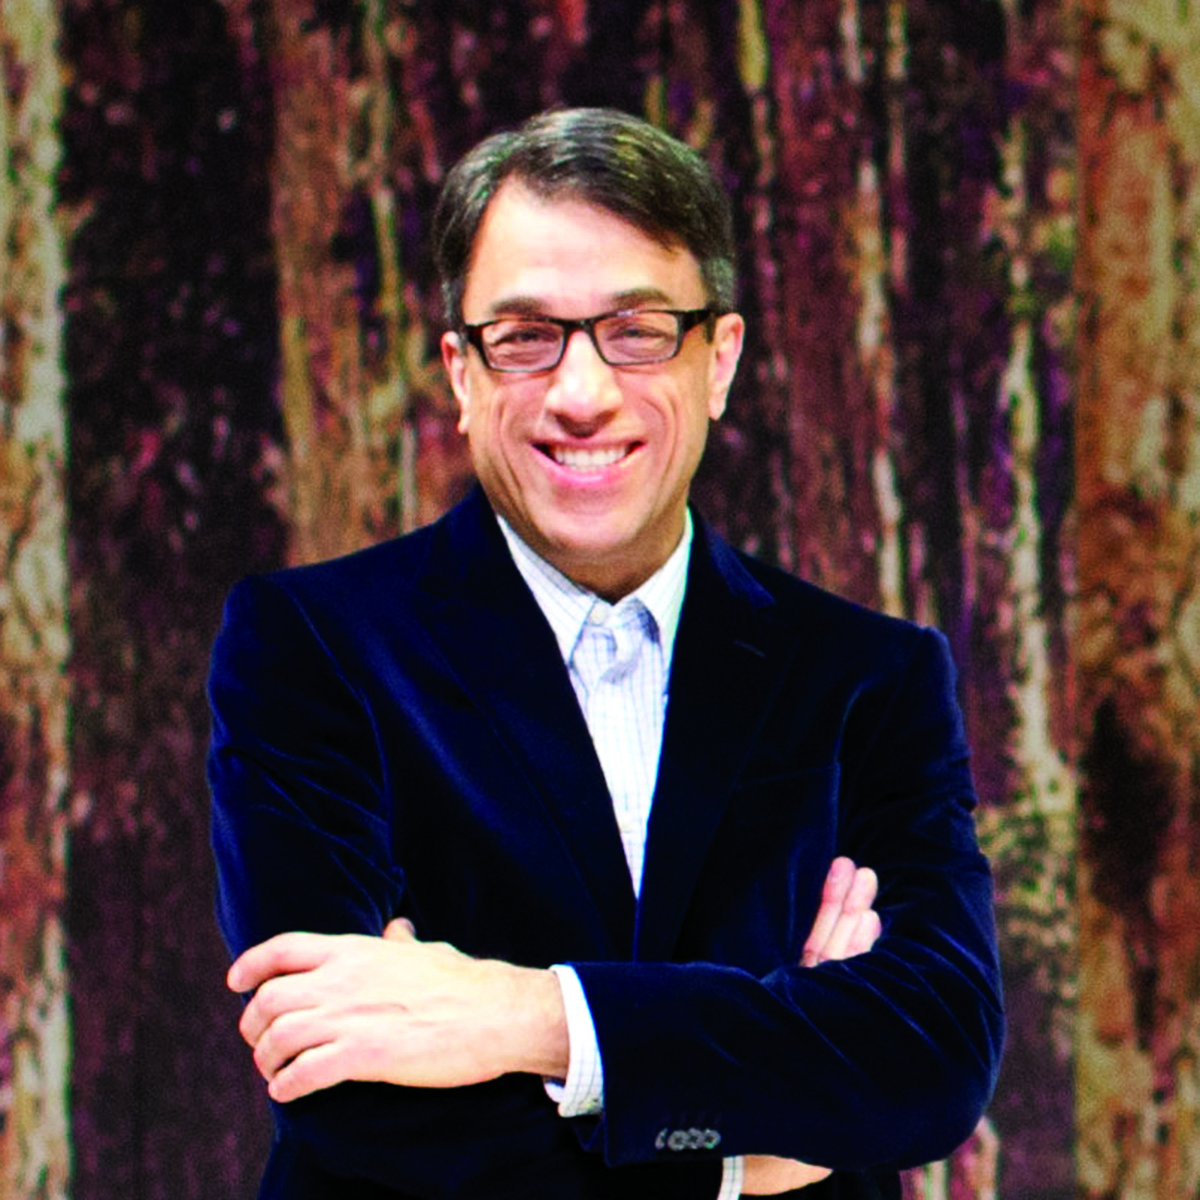 Ted Pappas, Artistic Director for Pittsburgh Public Theater